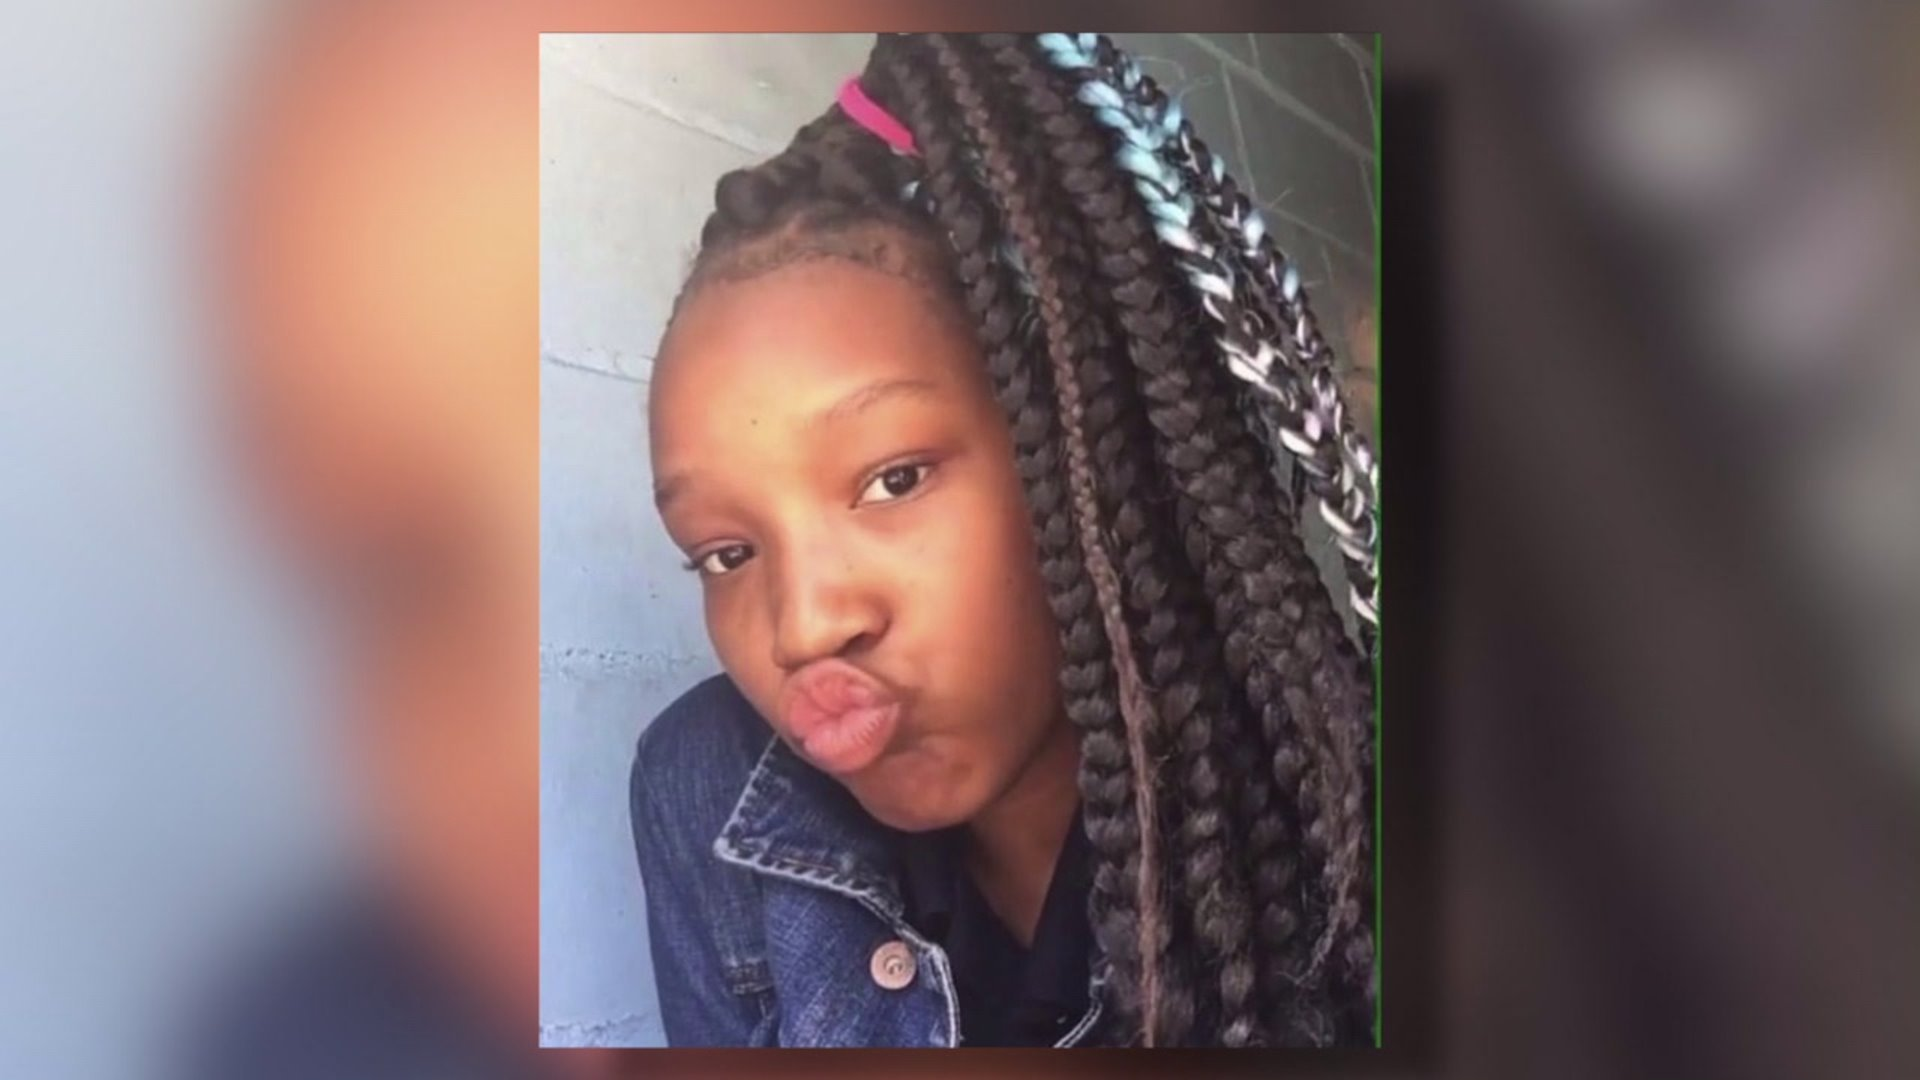 Kansas teen who fled police charged in crash that killed